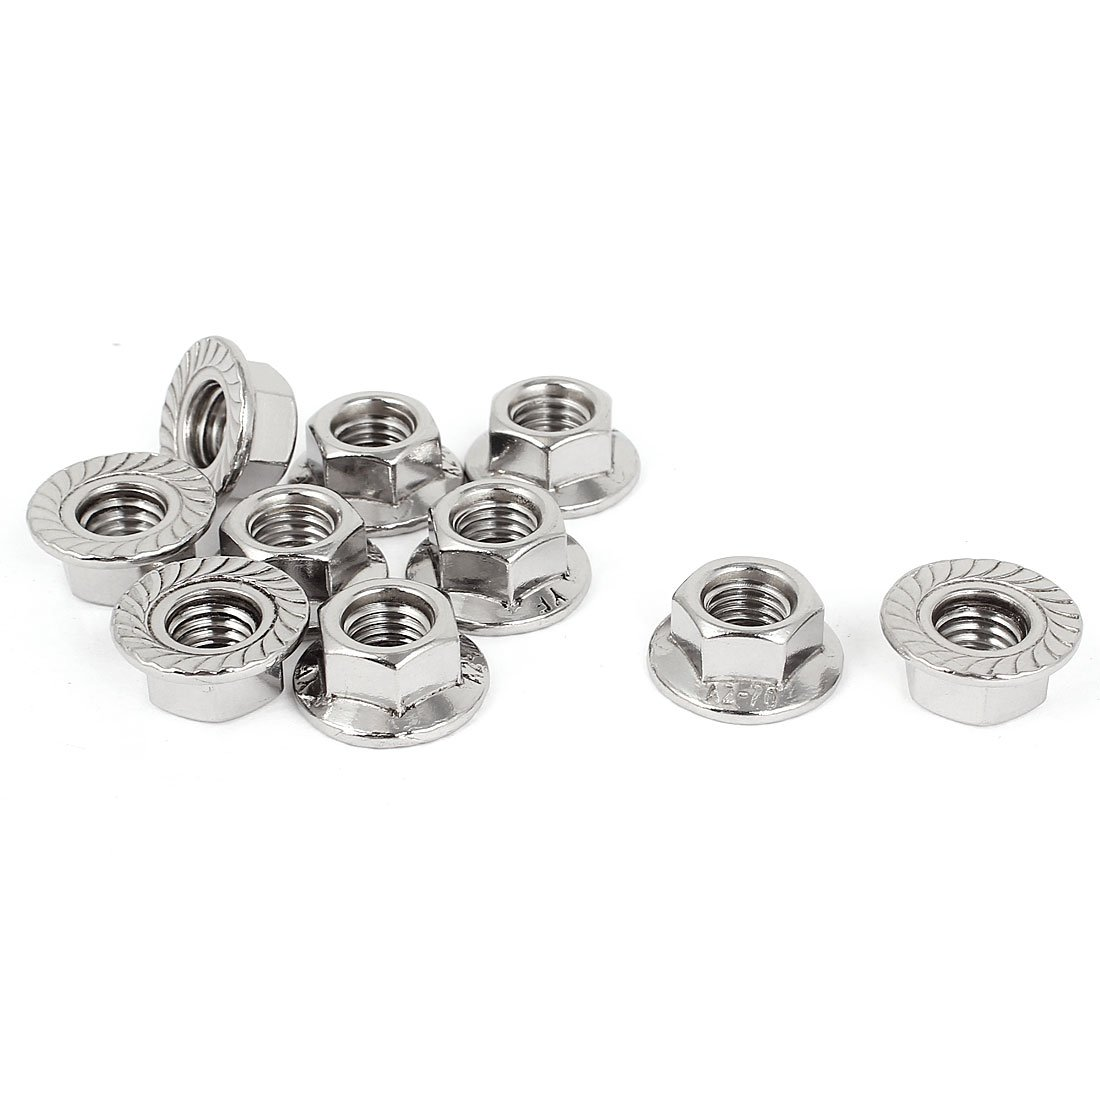 Pack of 10 Uxcell a15042300ux0041 22mm Diameter M10x1.5mm Stainless Steel Serrated Hex Flange Nuts